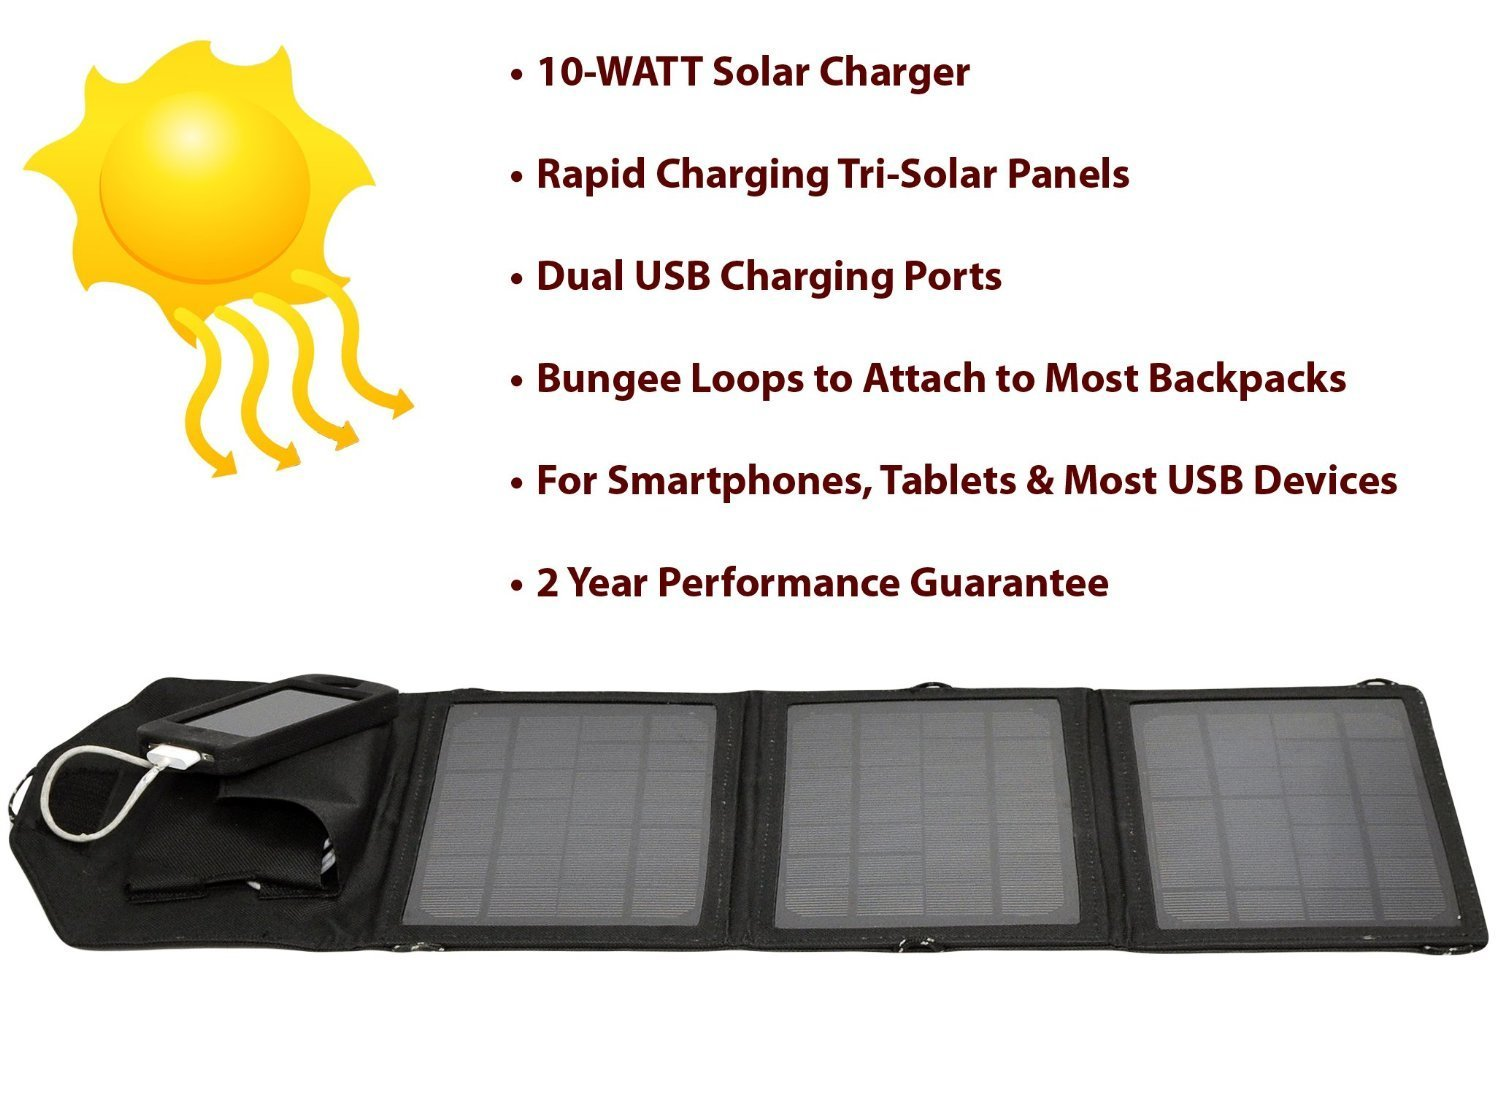 Opteka SP-10W Universal 10-WATT Triple-Panel Rapid Solar Charger with 2 USB Ports for Apple iPhone 3G, 4, 4S, 5, 5S, iPad 1, 2, at Sears.com